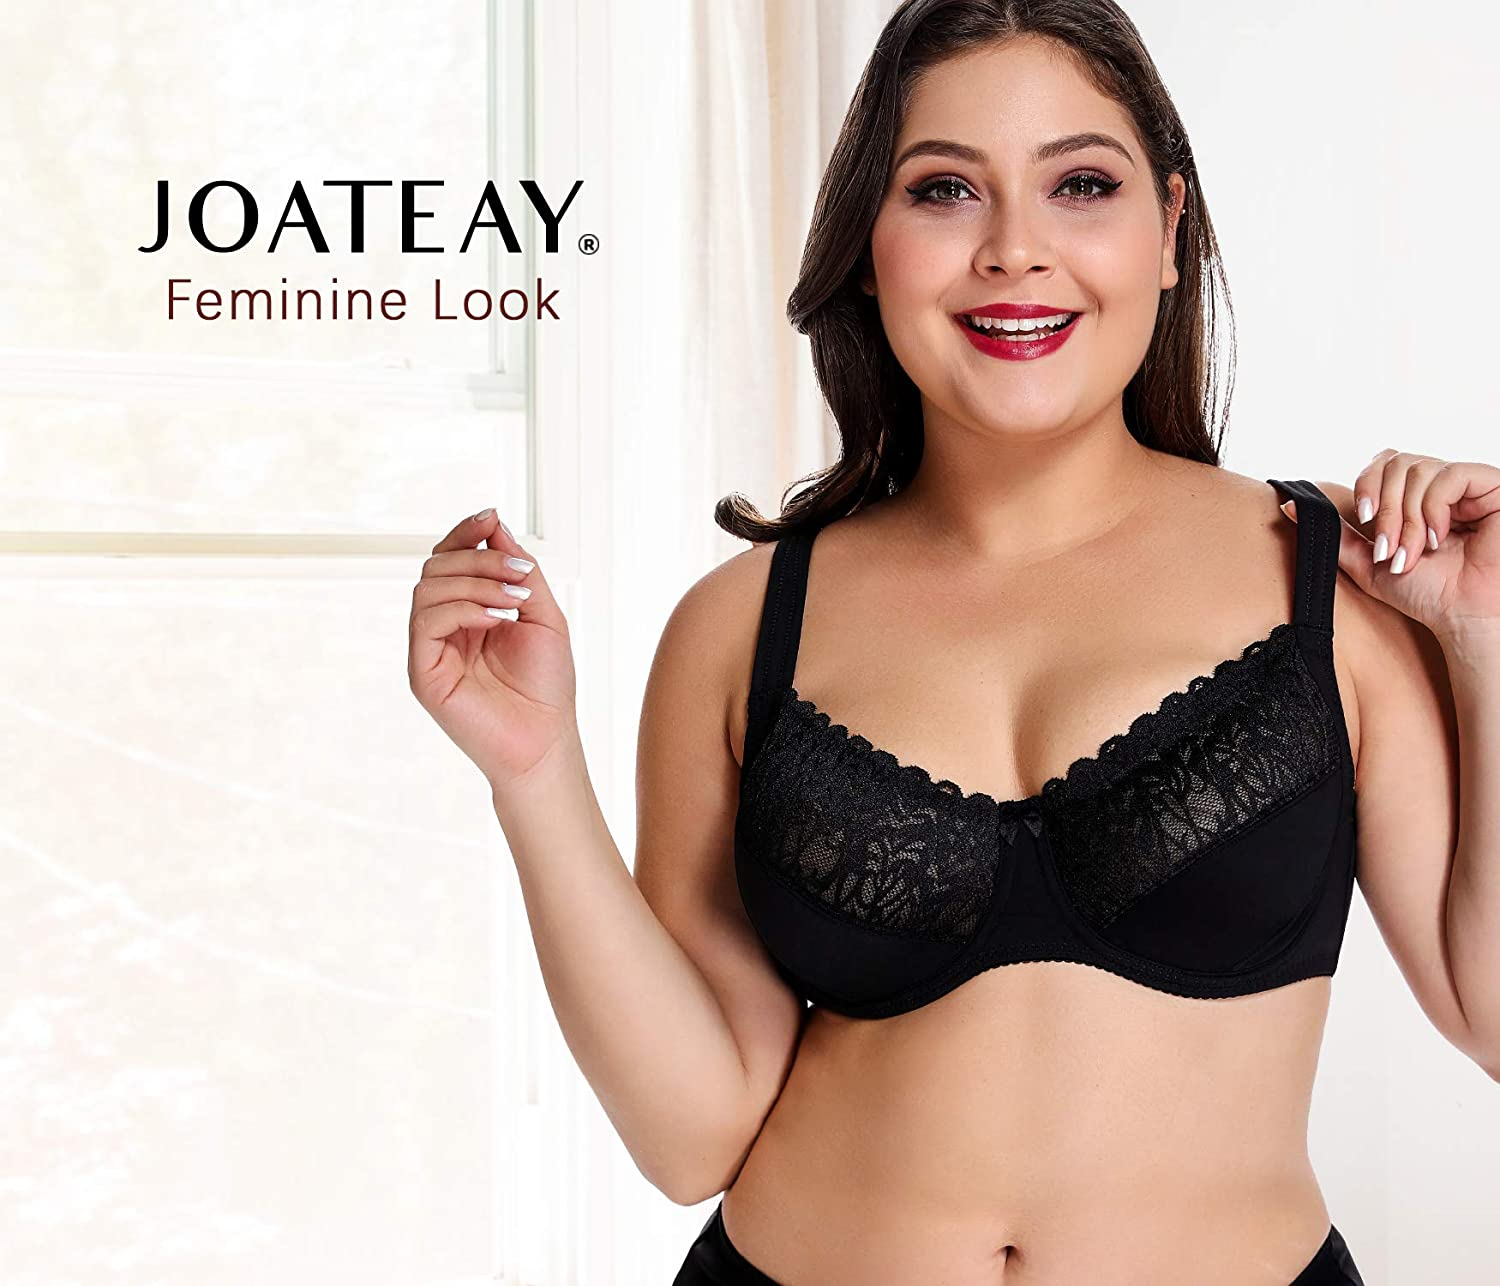 b56f3ab75f JOATEAY Women s Full Figure Bra Beauty Lace Unlined Underwire Support Bra  Plus Size at Amazon Women s Clothing store